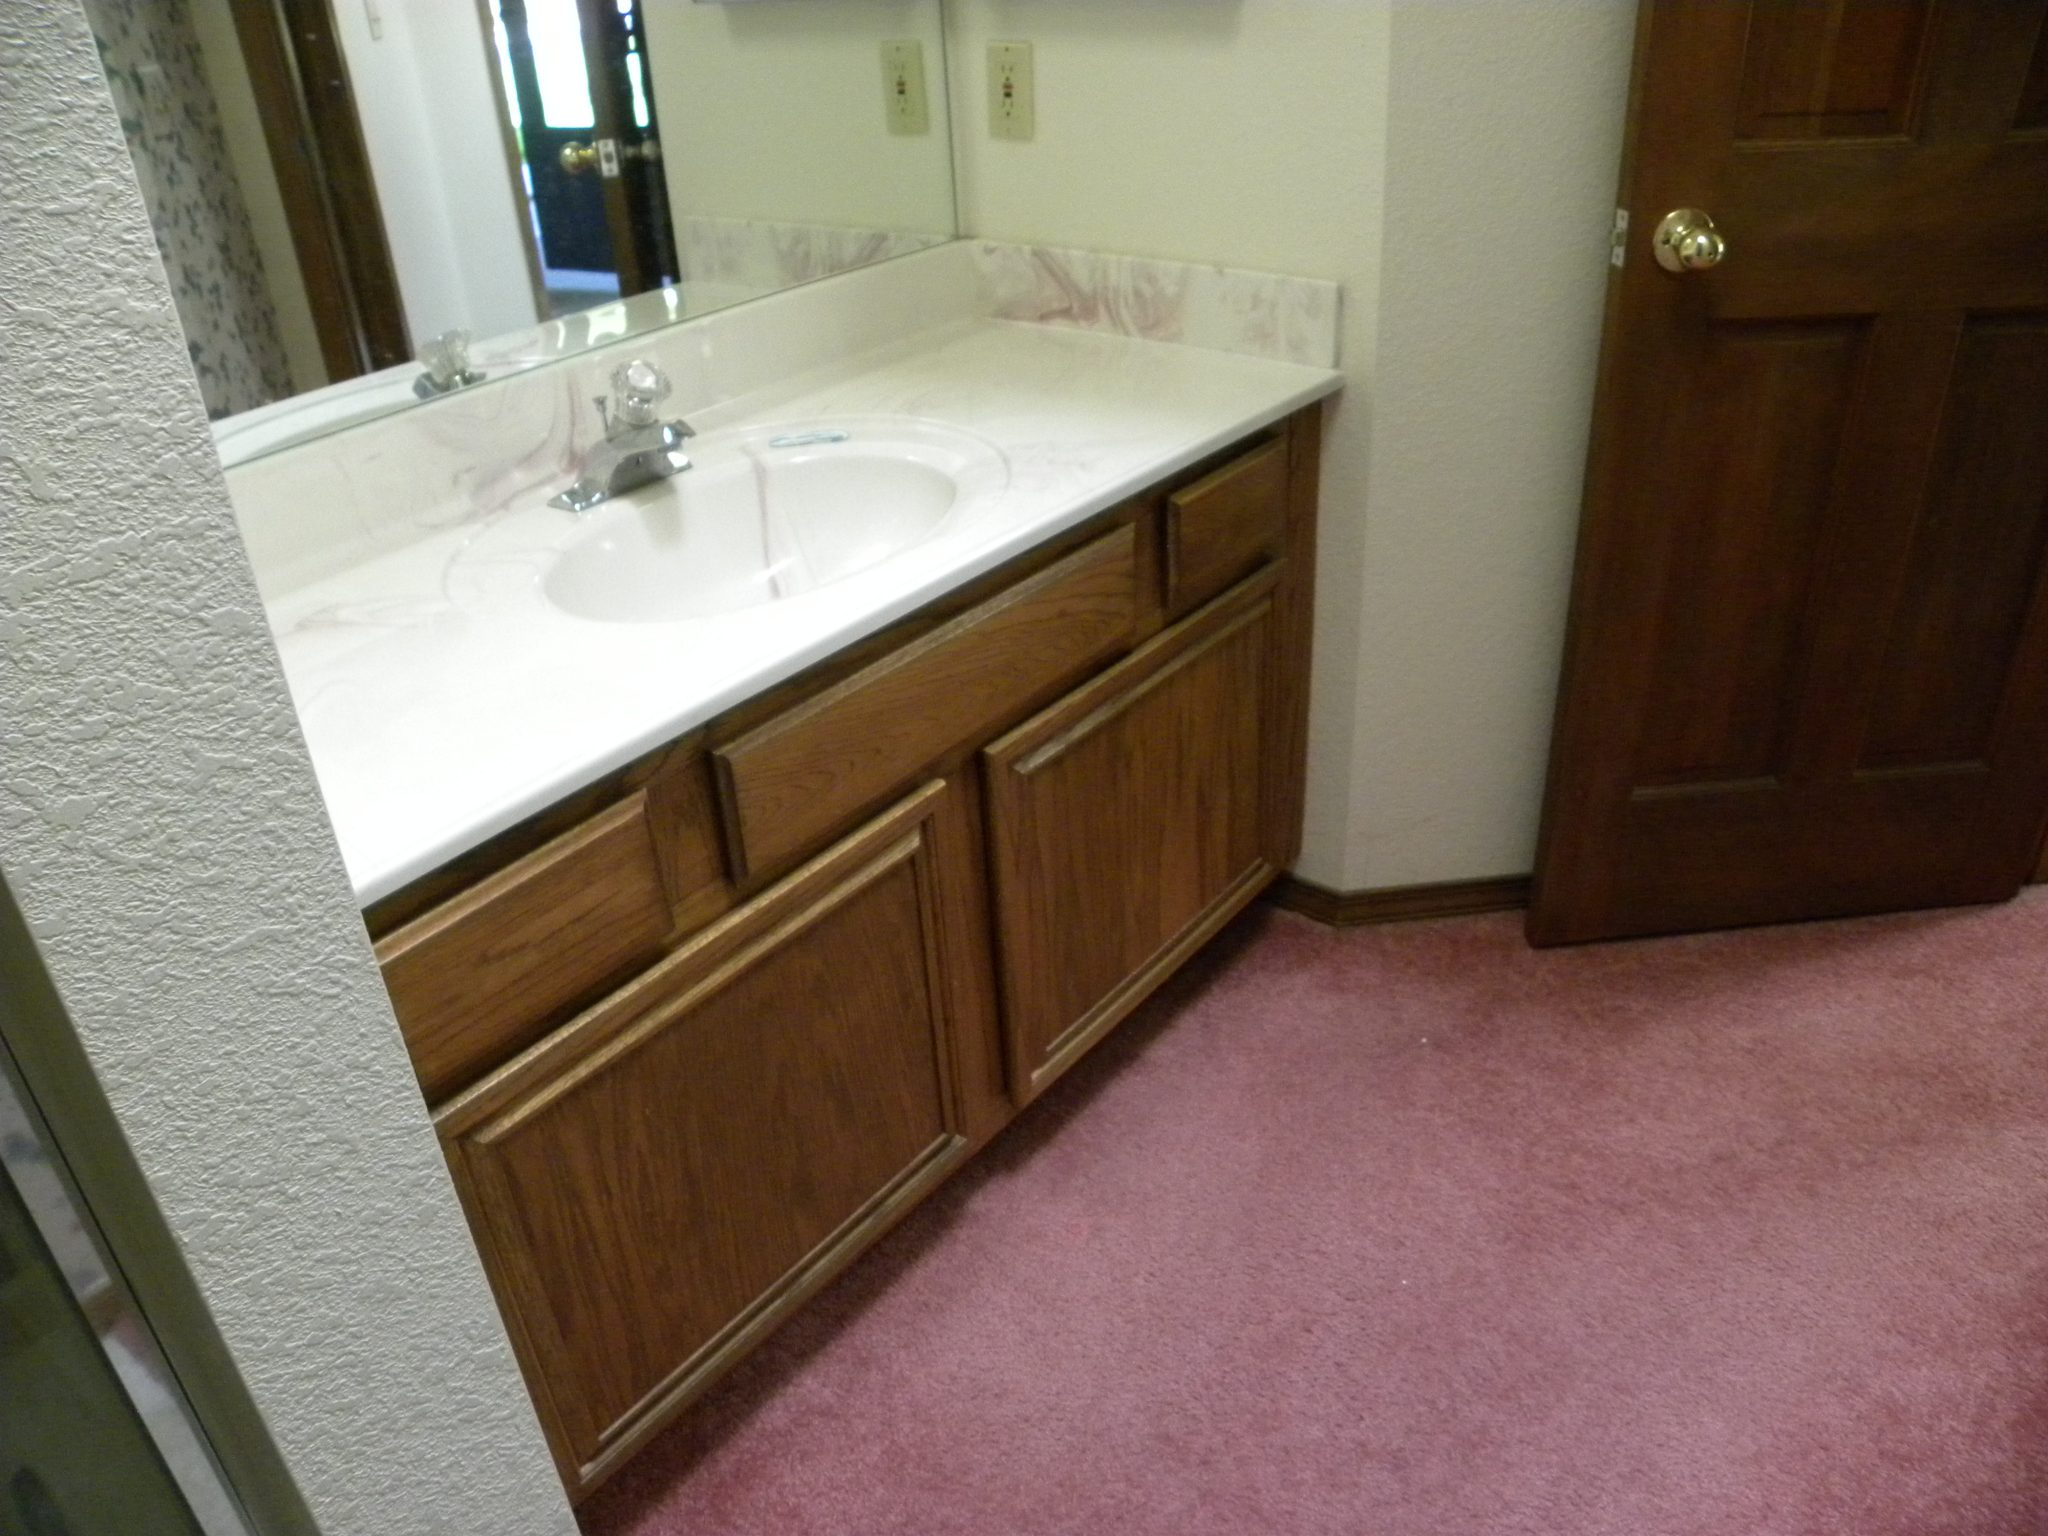 Interior shot of a residential bathroom in need of remodeling